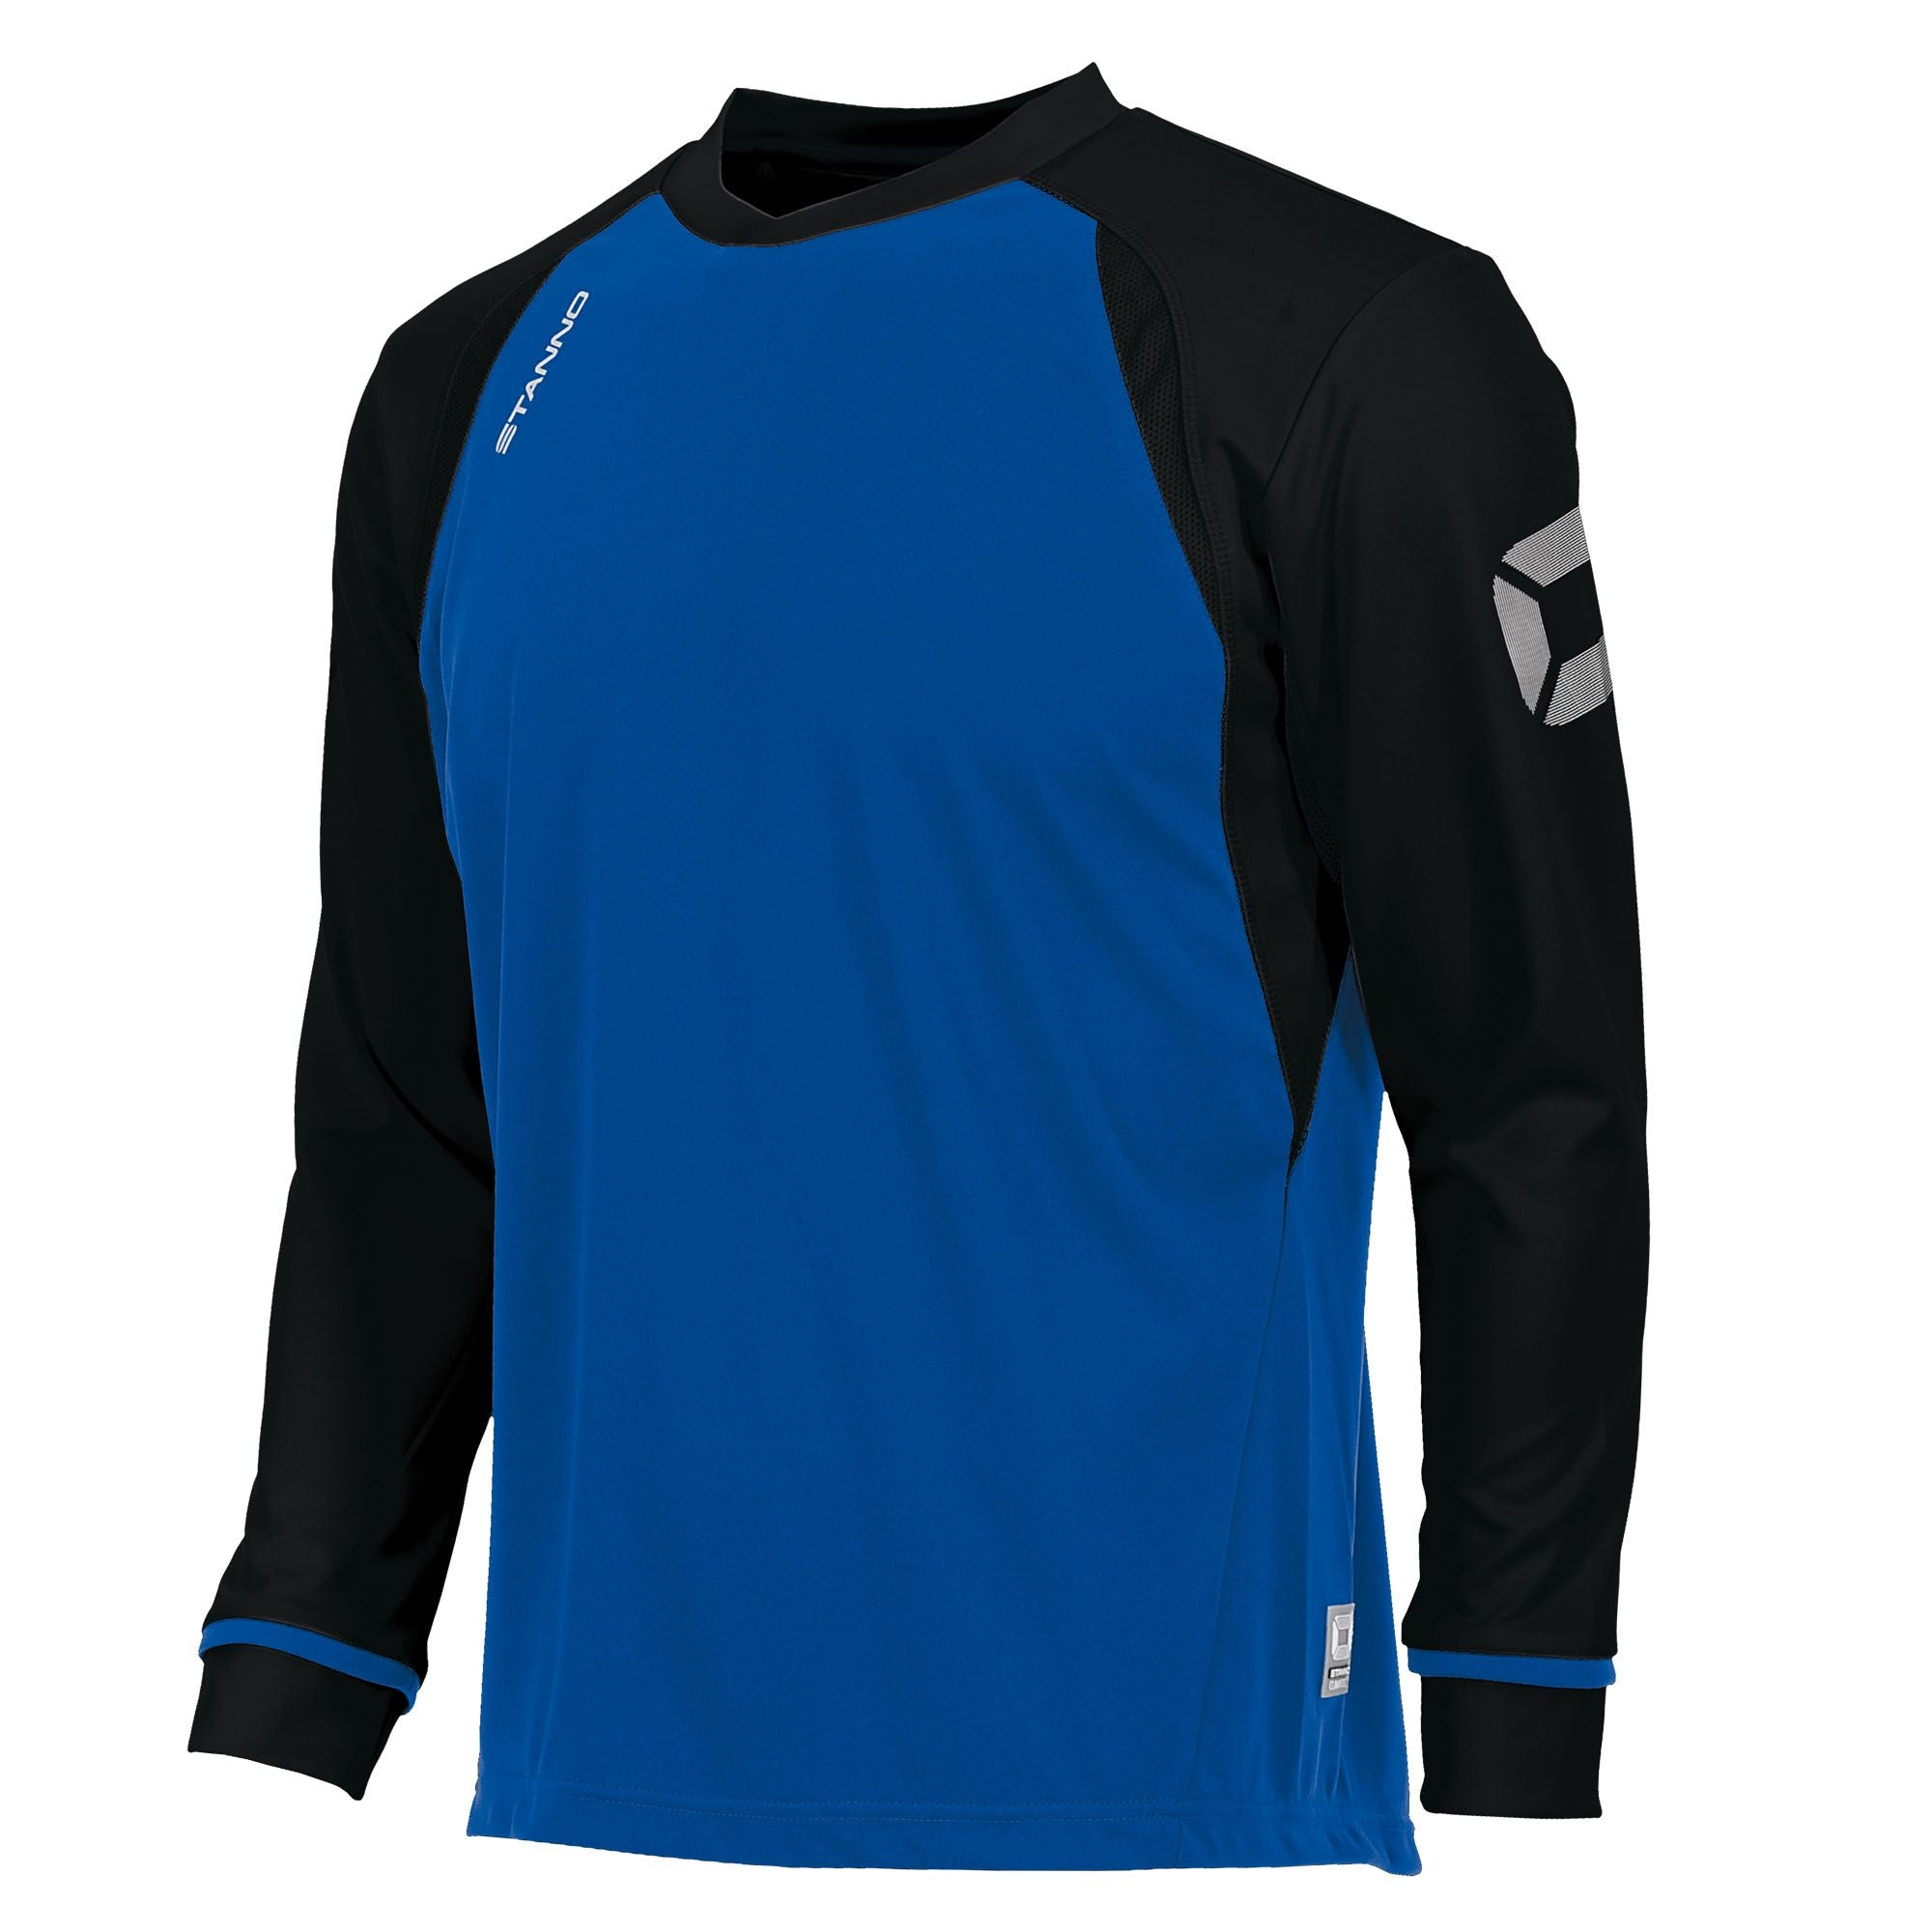 Long sleeved Stanno Liga shirt in royal blue with contrast black sleeves and collar, Stadium logo on the sleeve.